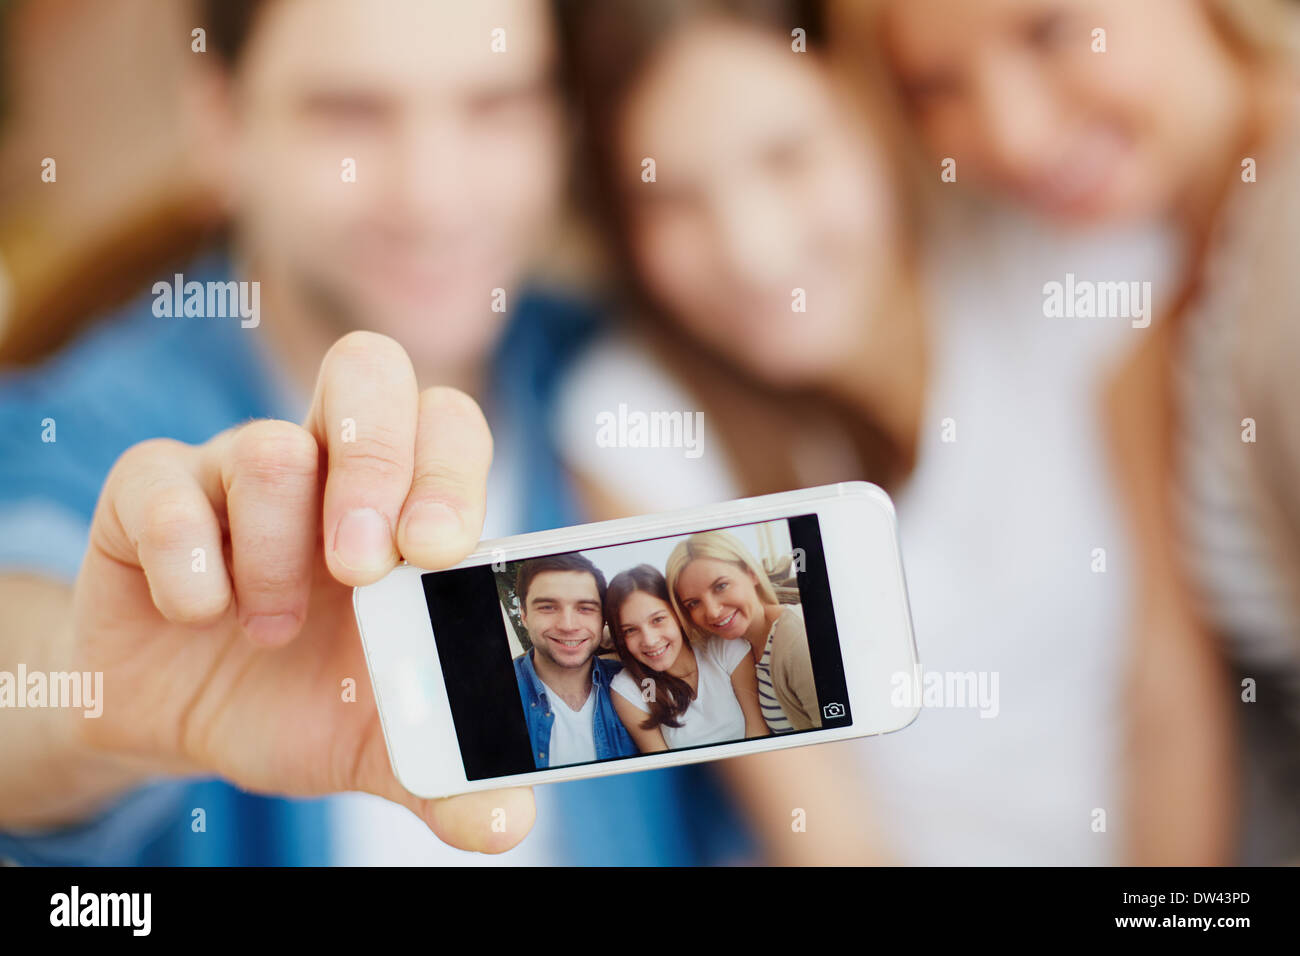 Male hand holding cellular phone with image of happy family of three looking at camera - Stock Image